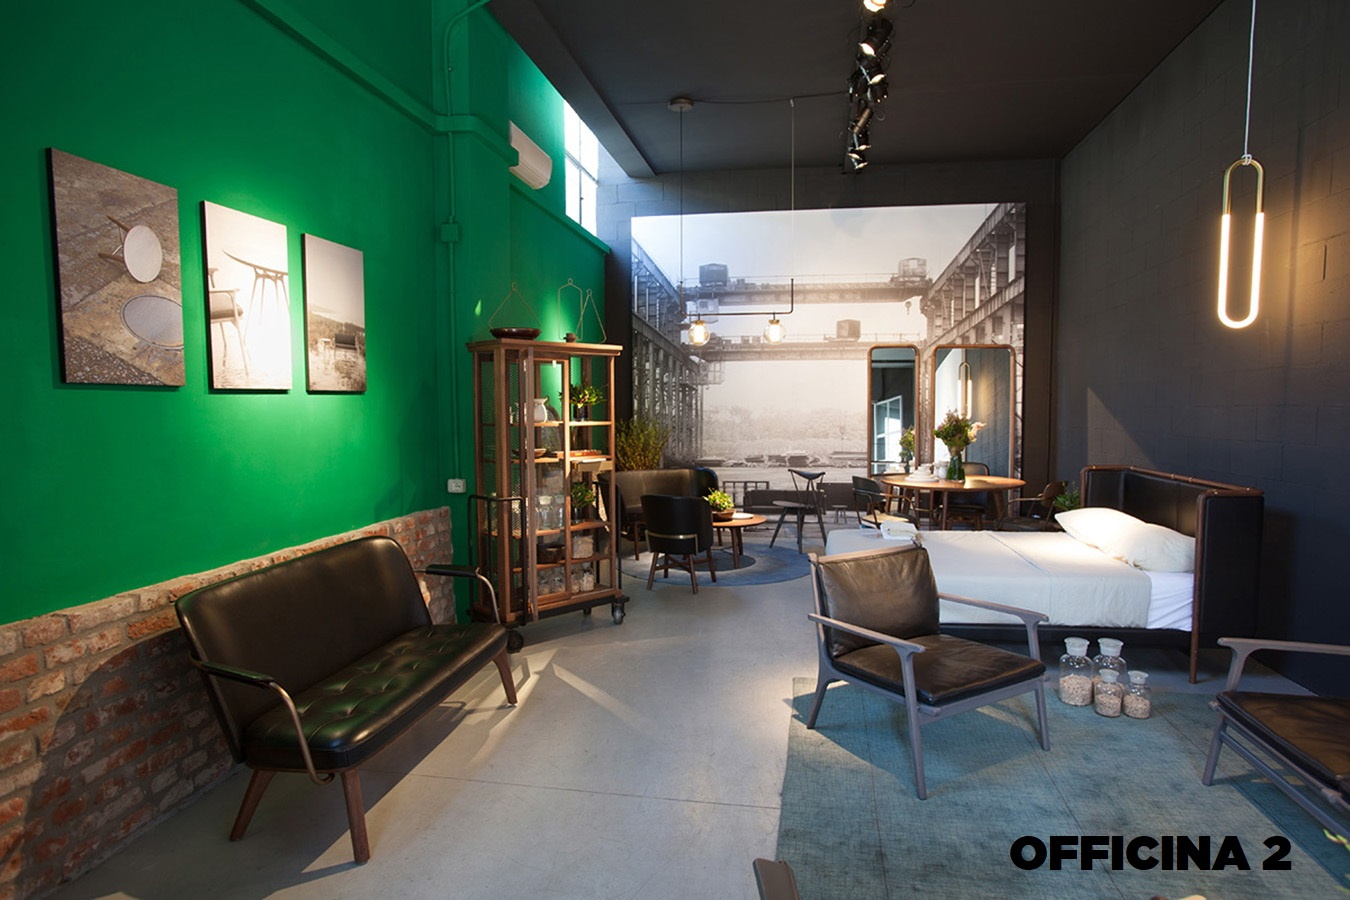 Opificio 31-Officine Cova - Officina, Open space, Showroom, Spazio outdoor di 320mq in Via Tortona 31 | location disallestita 9